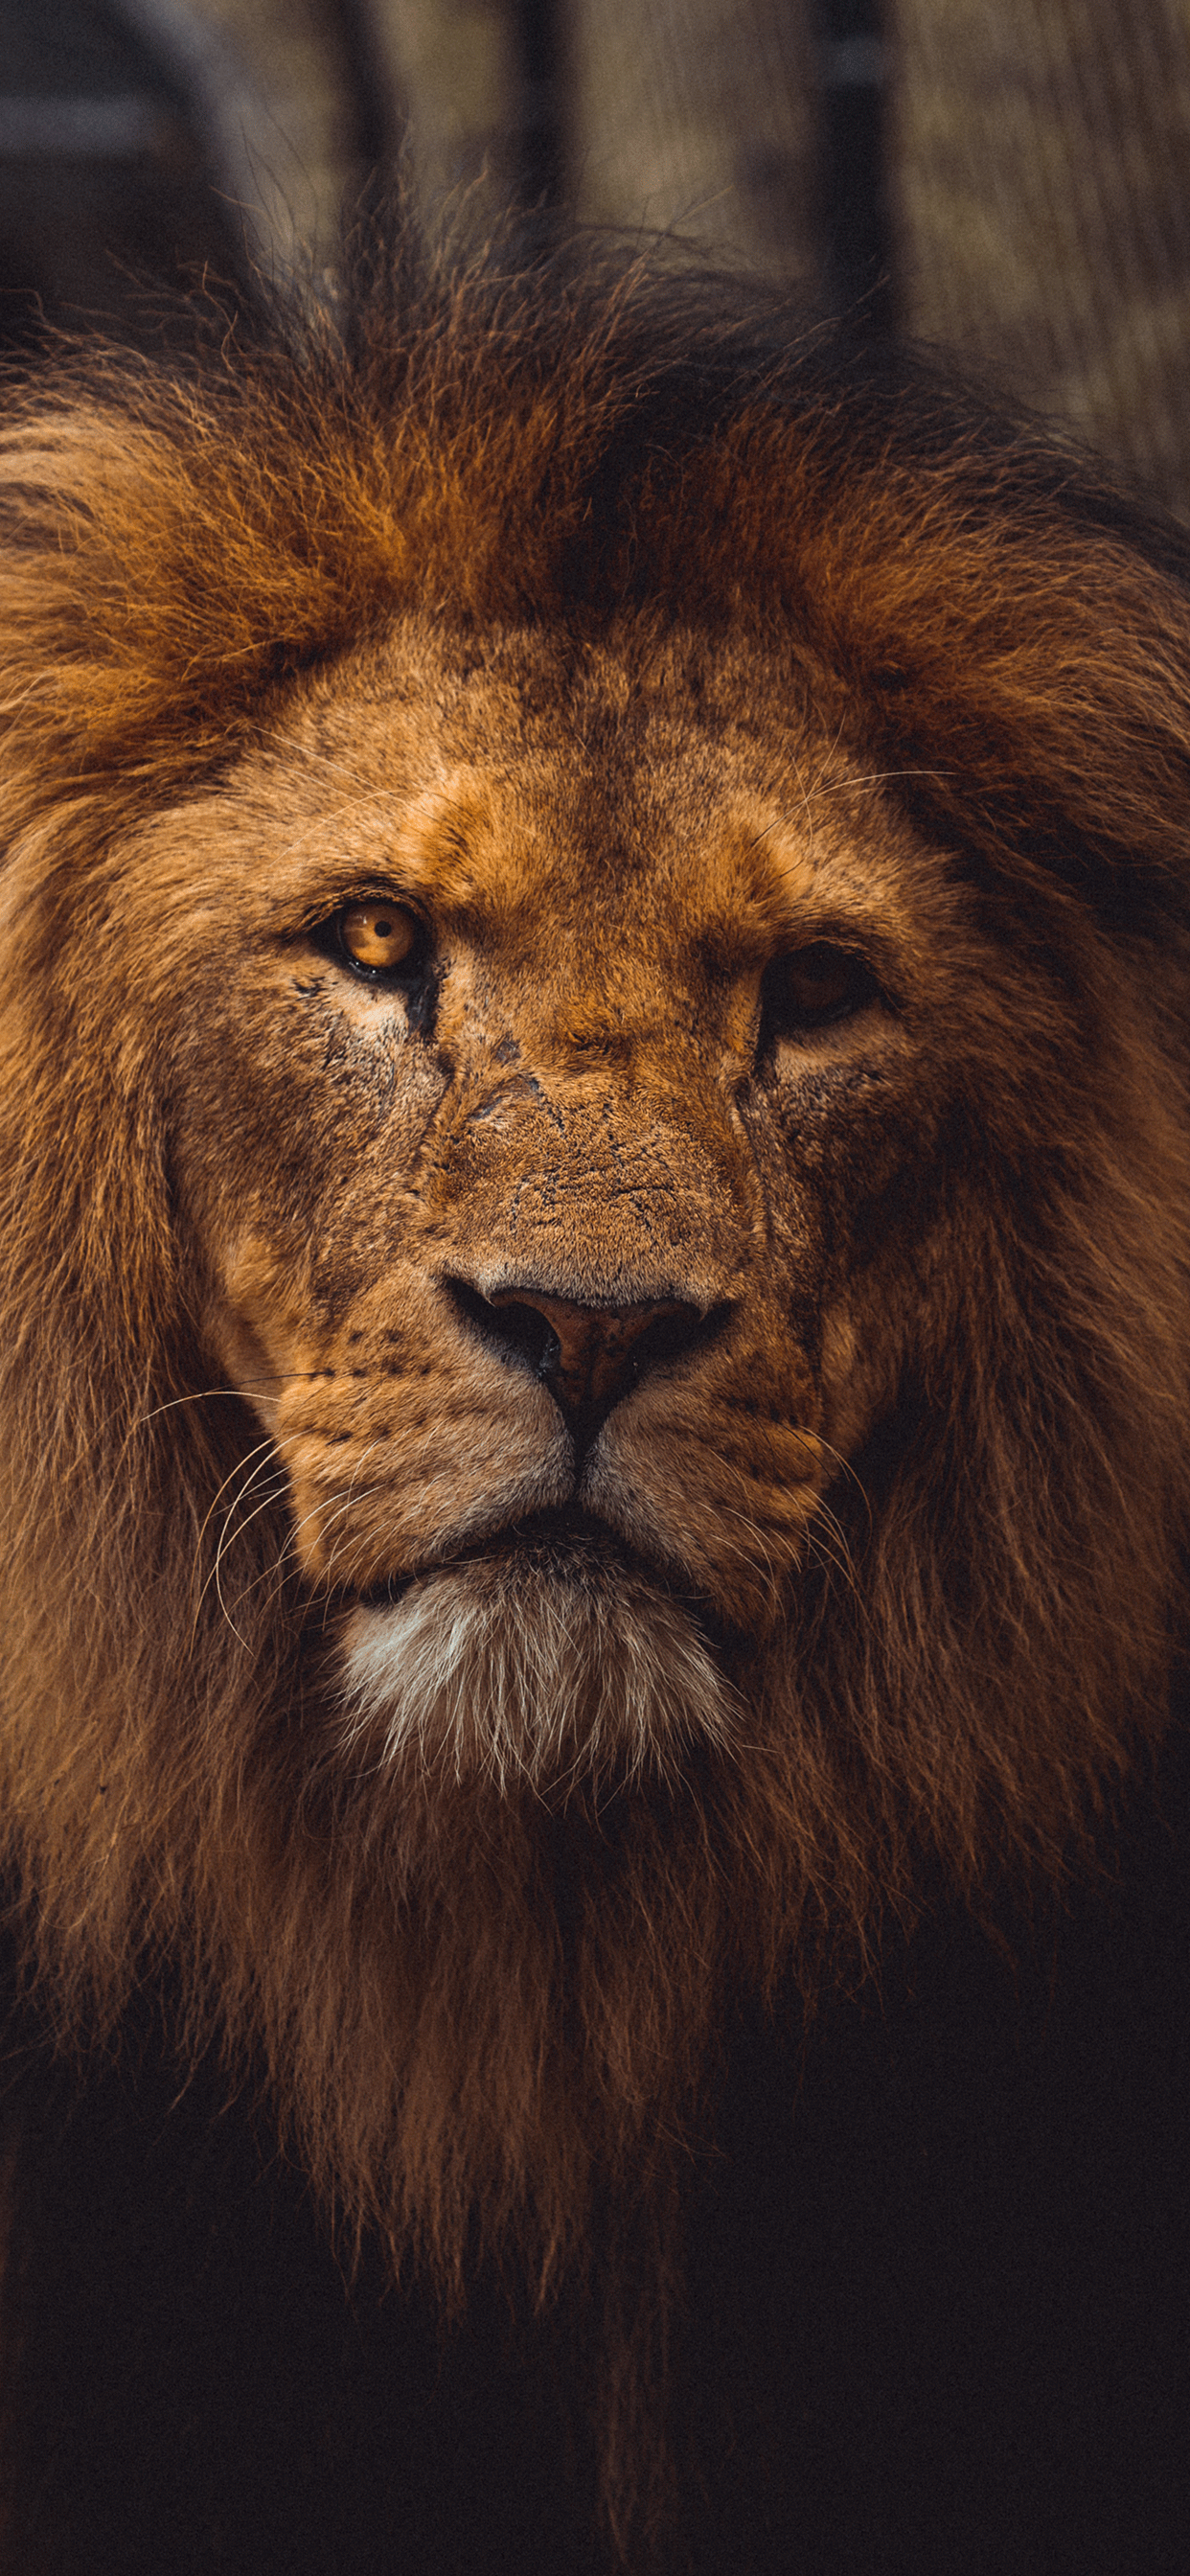 Lion Wallpaper For Iphone X 8 7 6 Free Download On 3wallpapers